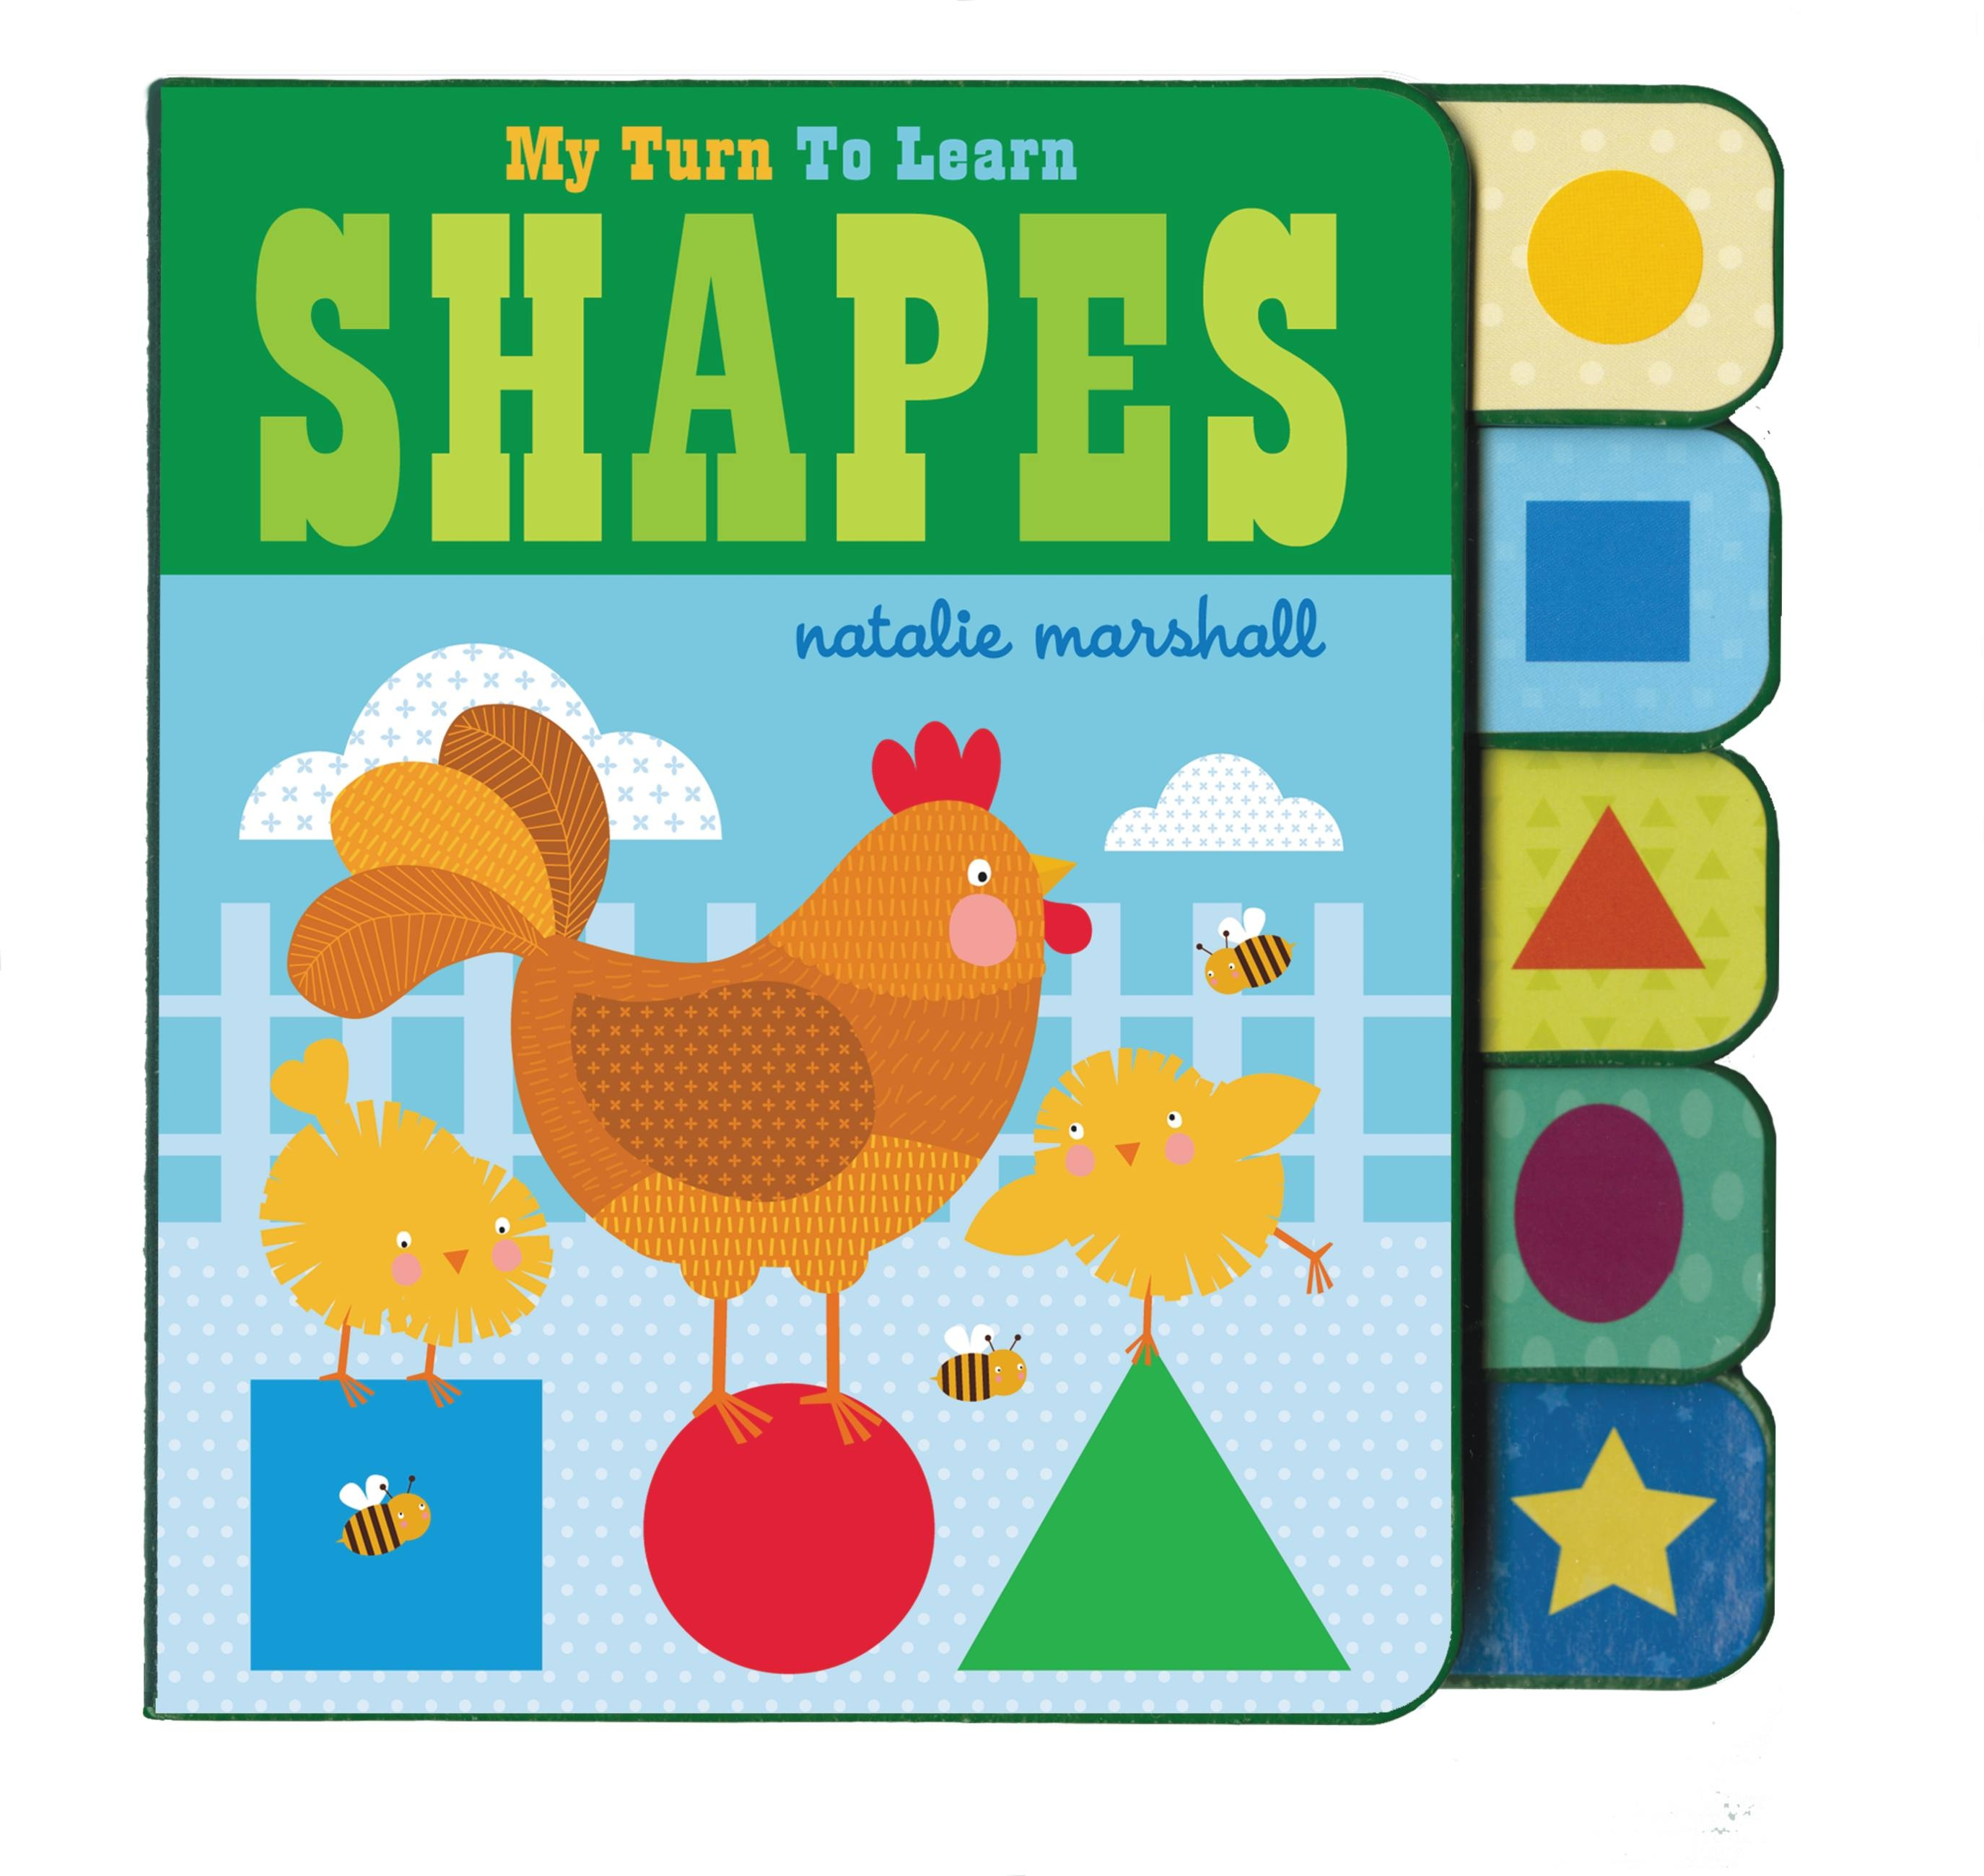 My Turn To Learn Shapes by Natalie Marshall | Hachette ...